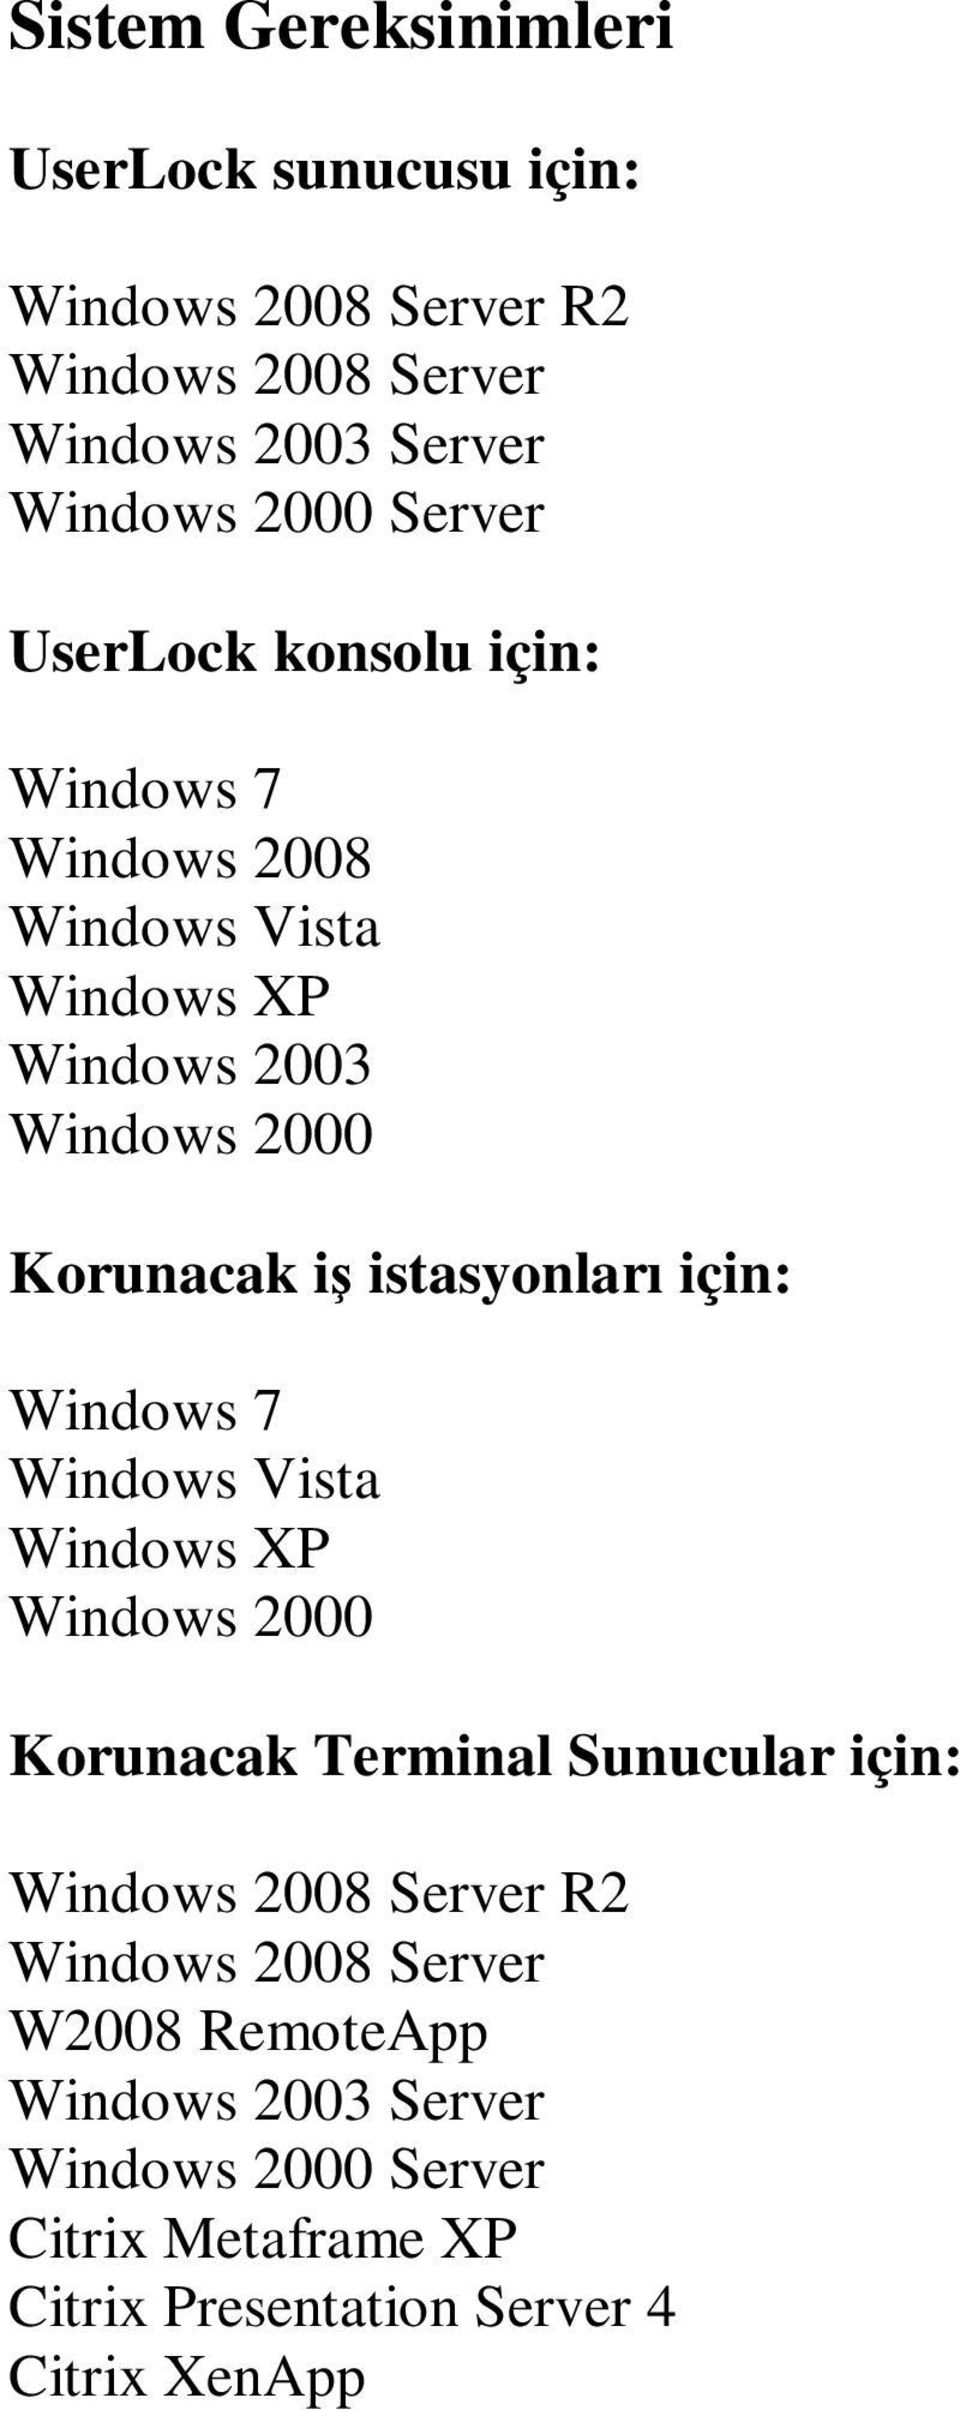 istasyonları için: Windows 7 Windows Vista Windows XP Windows 2000 Korunacak Terminal Sunucular için: Windows 2008 Server R2